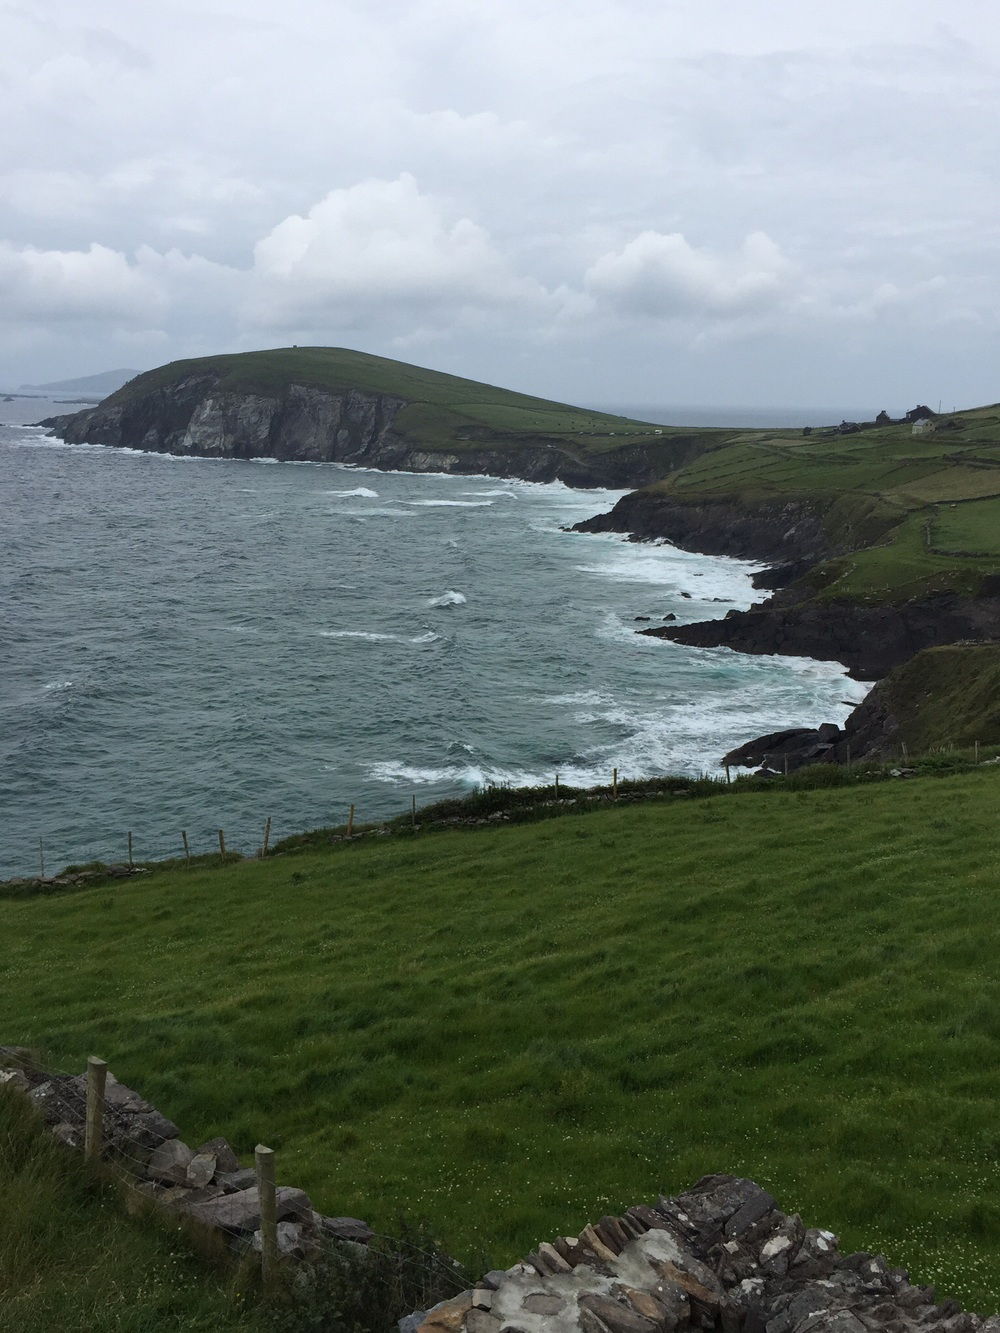 More views in Dingle.